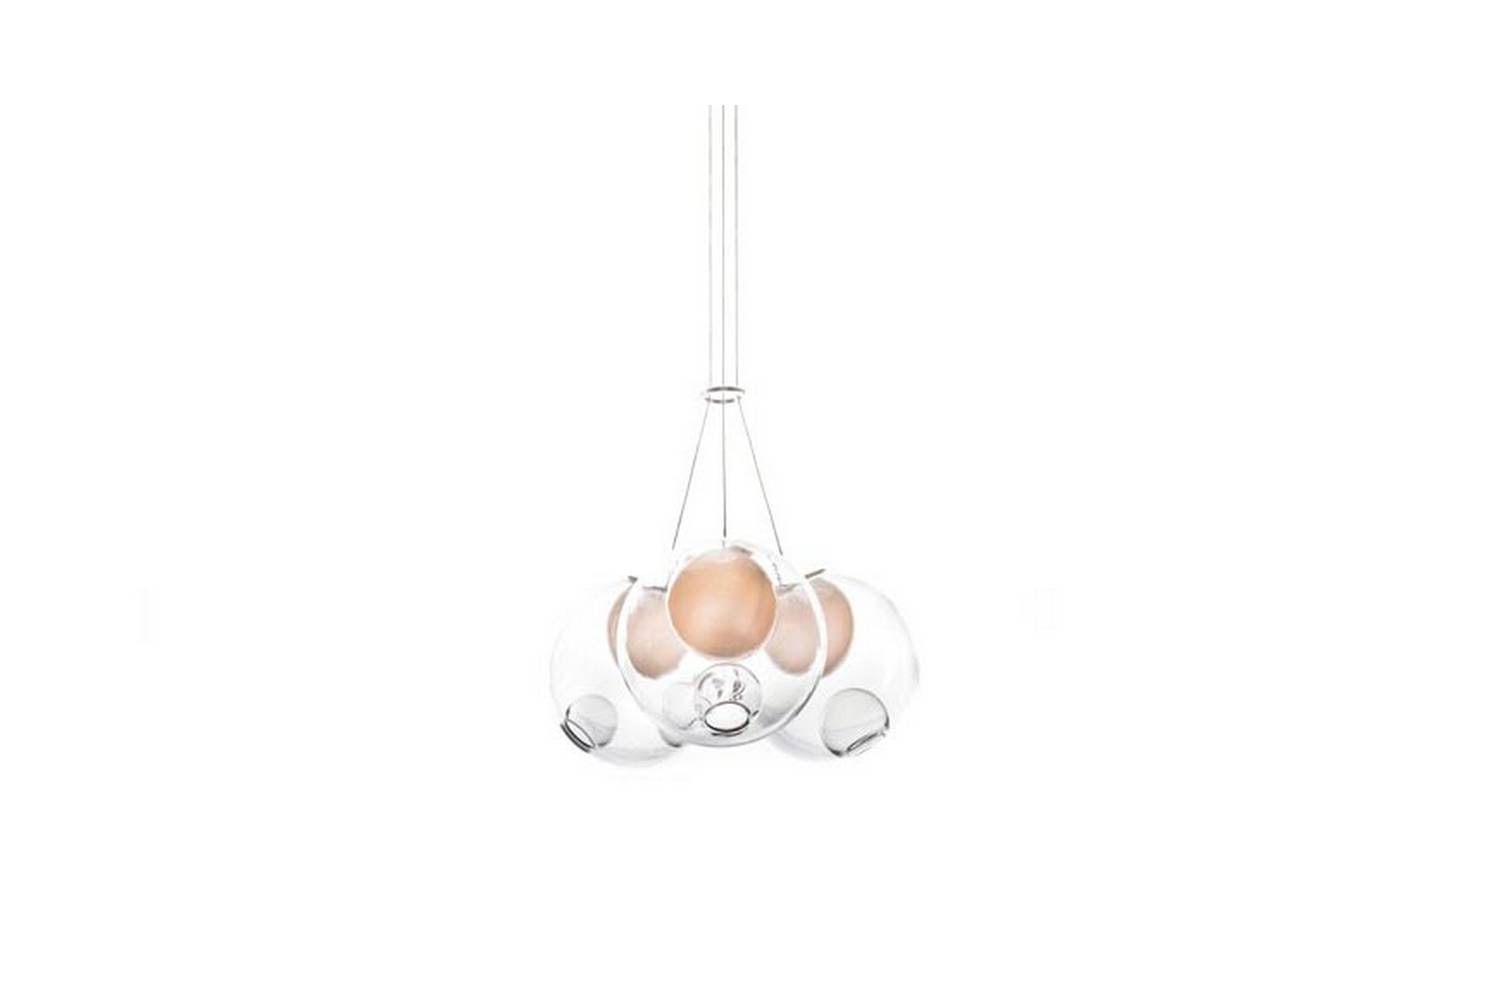 28.3 Cluster Suspension Lamp by Omer Arbel for Bocci